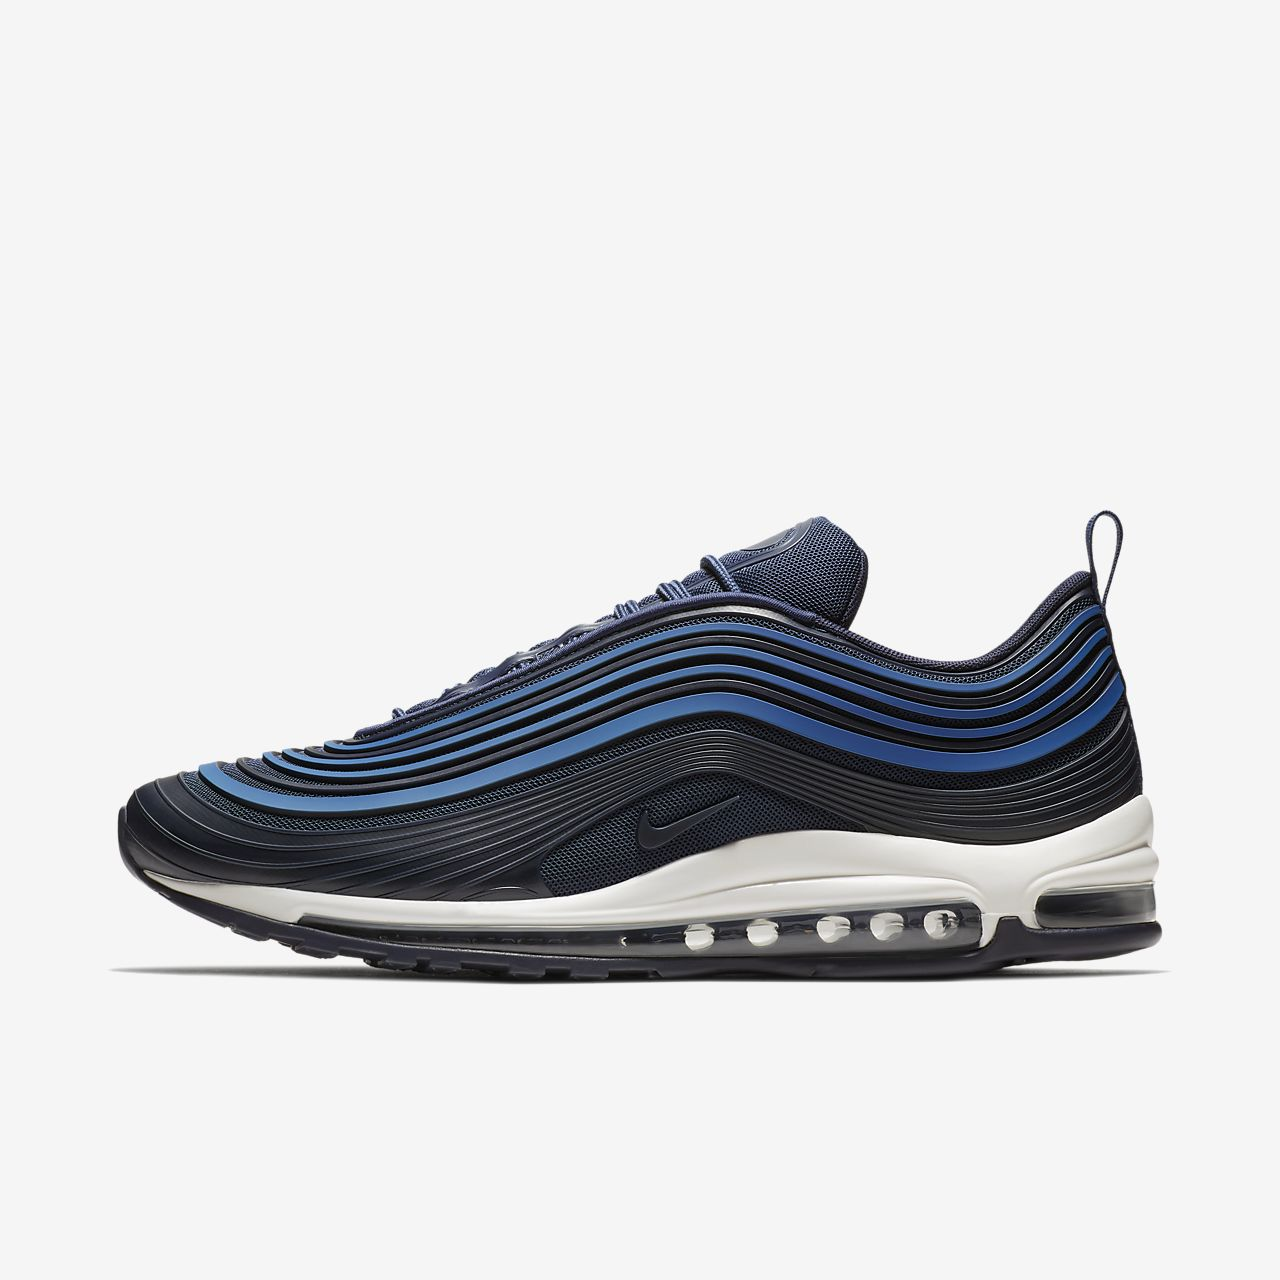 Nike Air Max 97 History, News, Release Dates